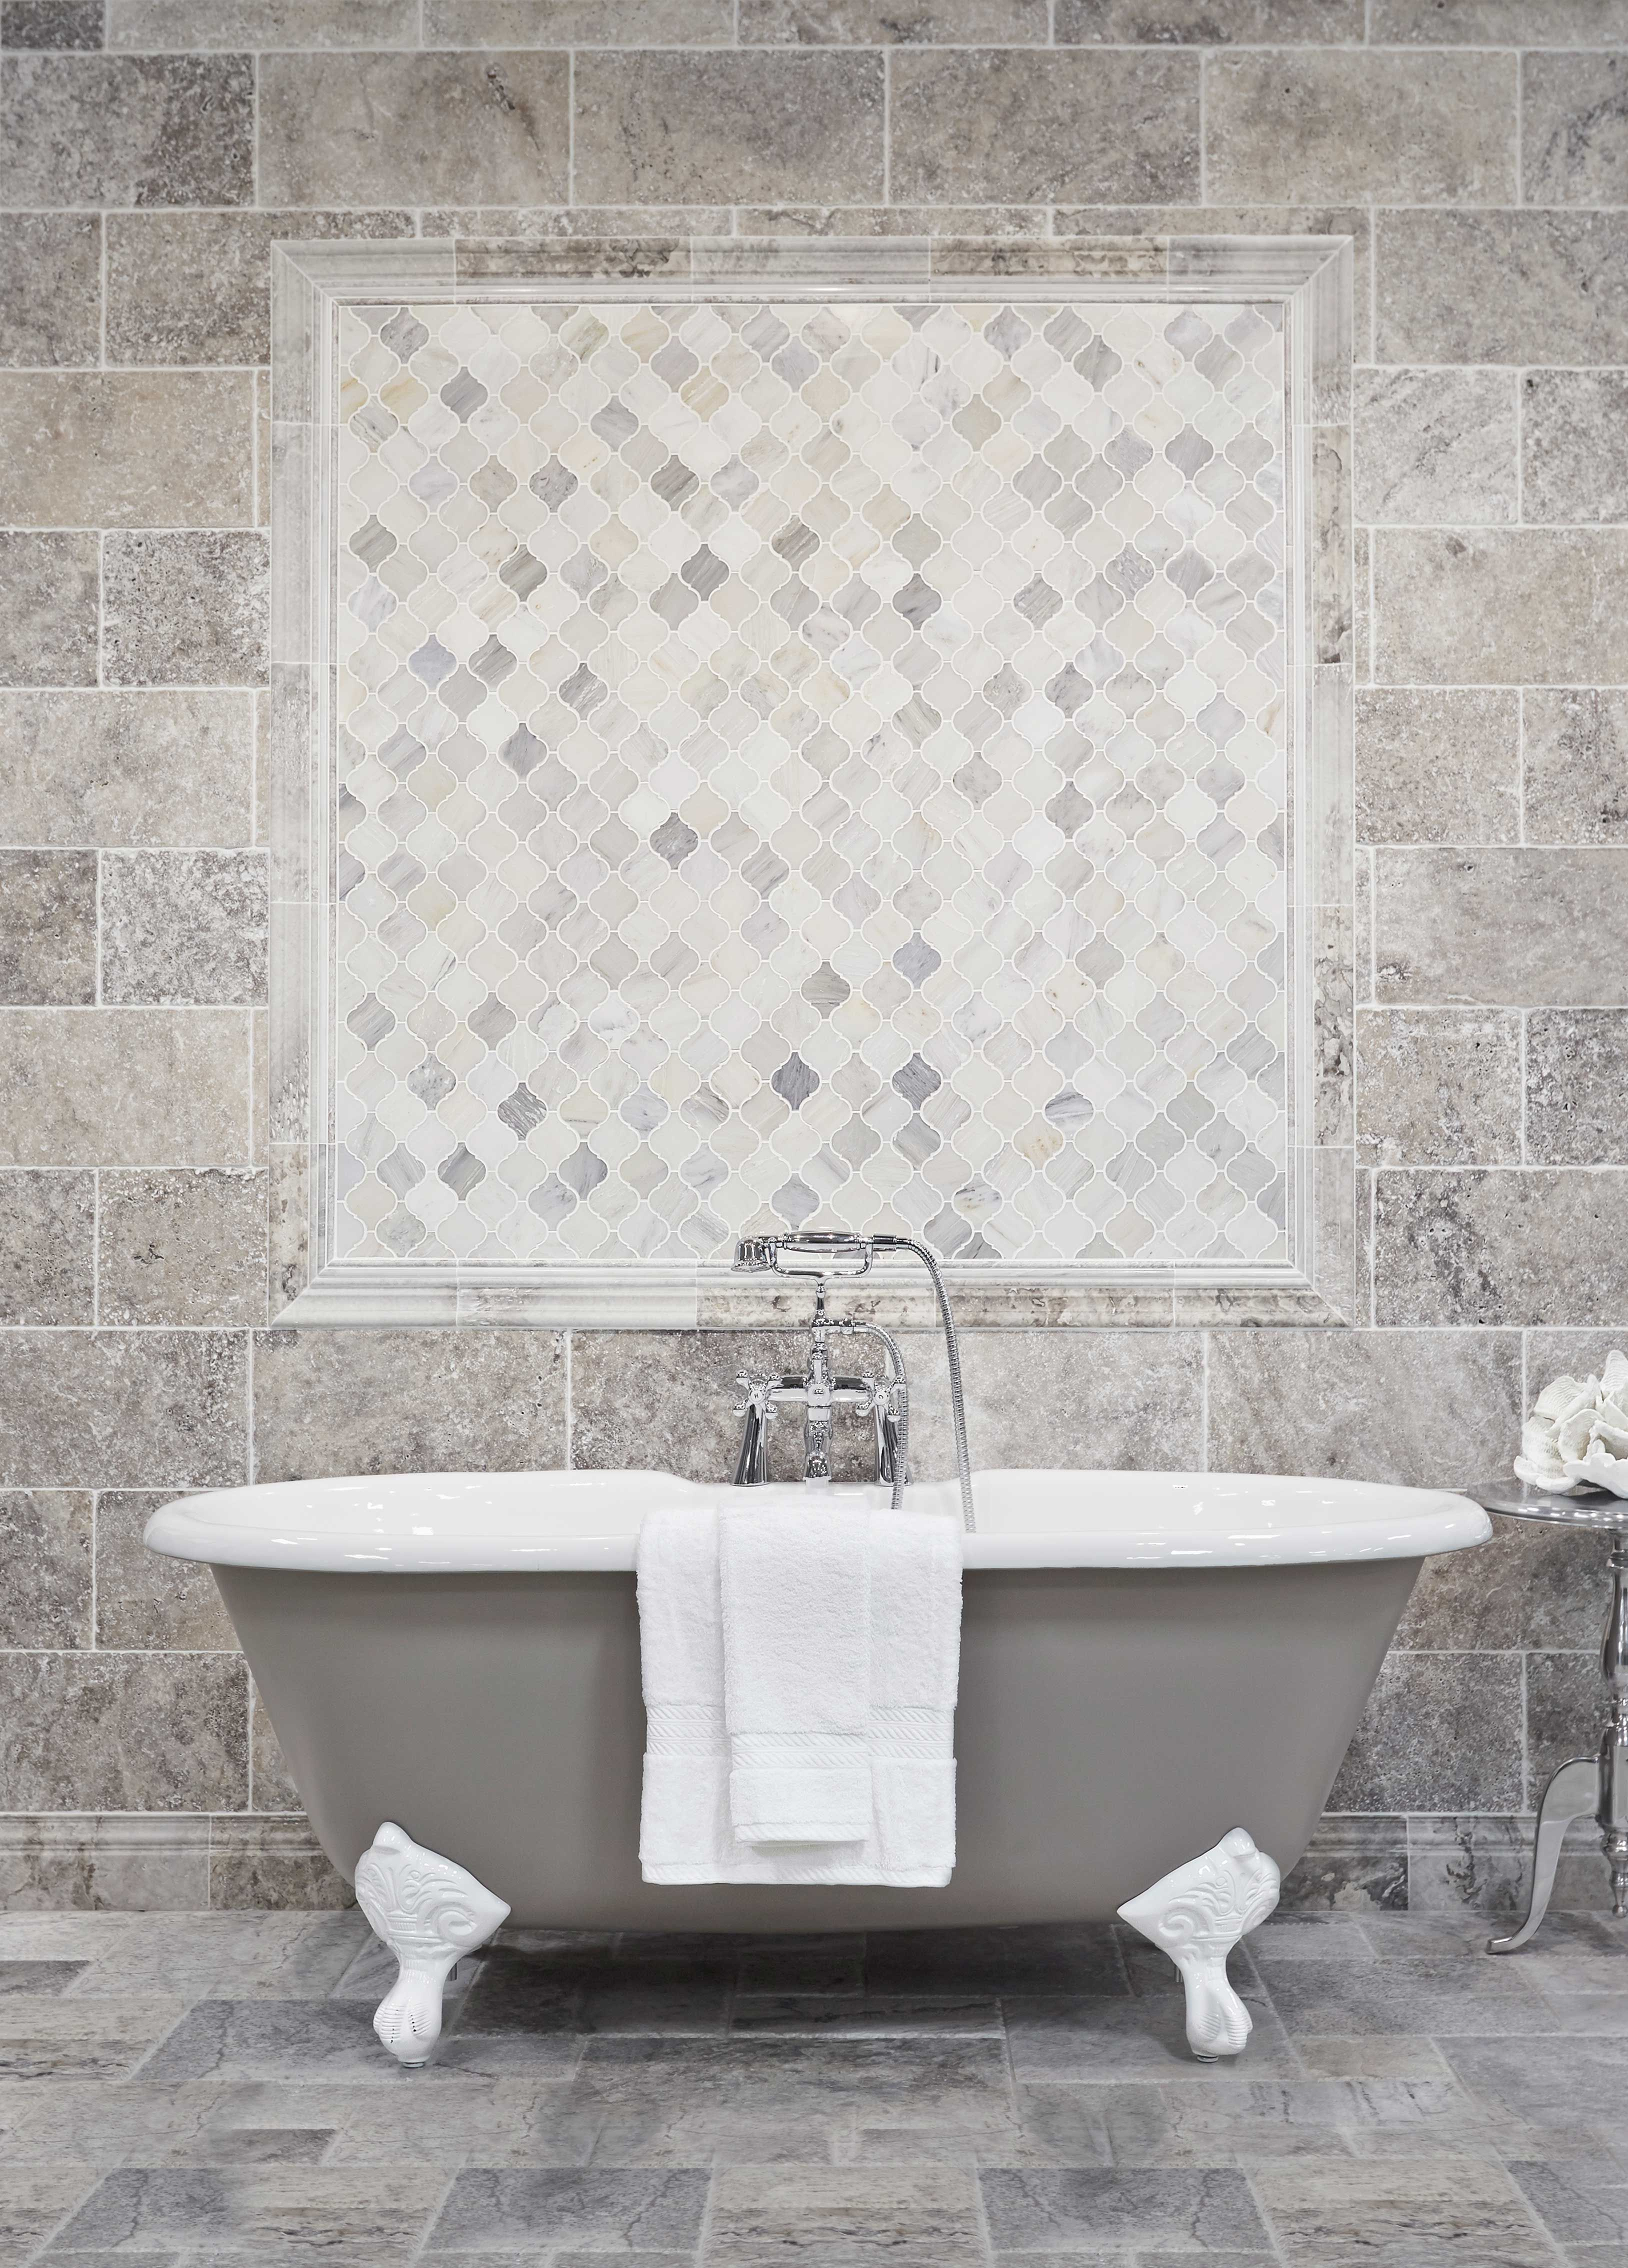 Bathroom Wall Tile Hampton Polished Arabesque Marble Mosaic Tile